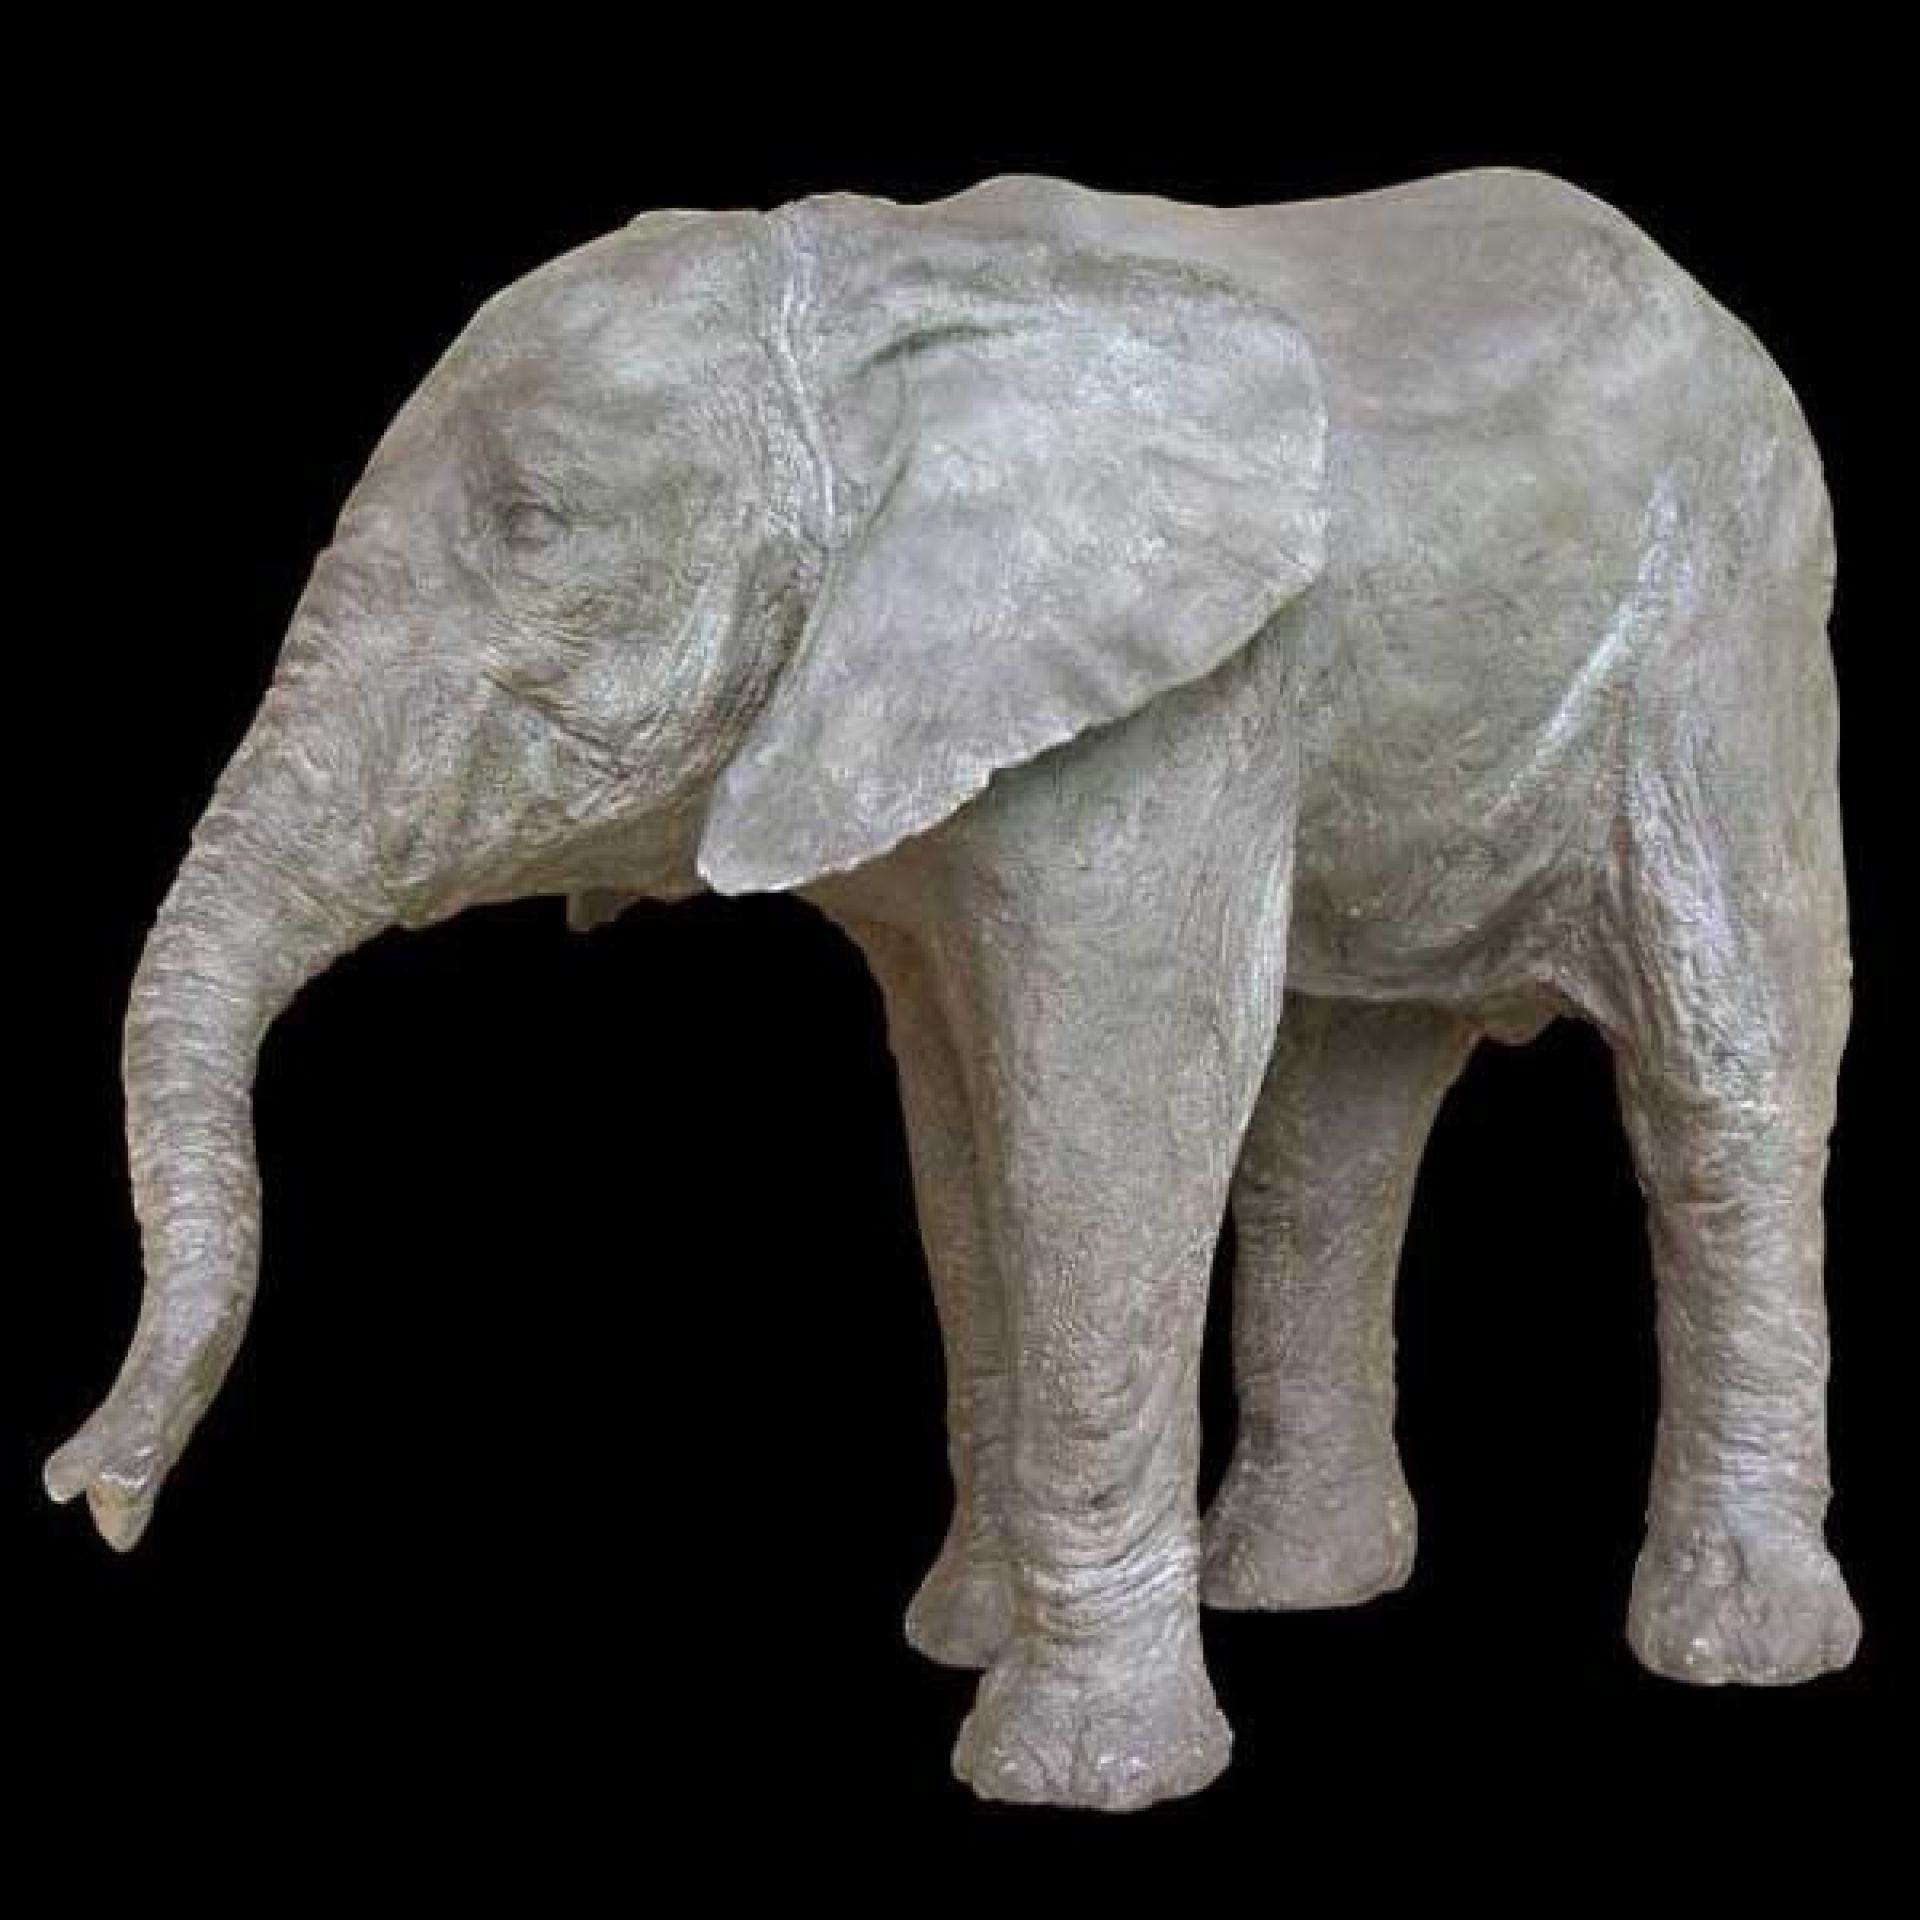 LIMITED EDITION 11-ELEPHANT RESIN SCULPTURE